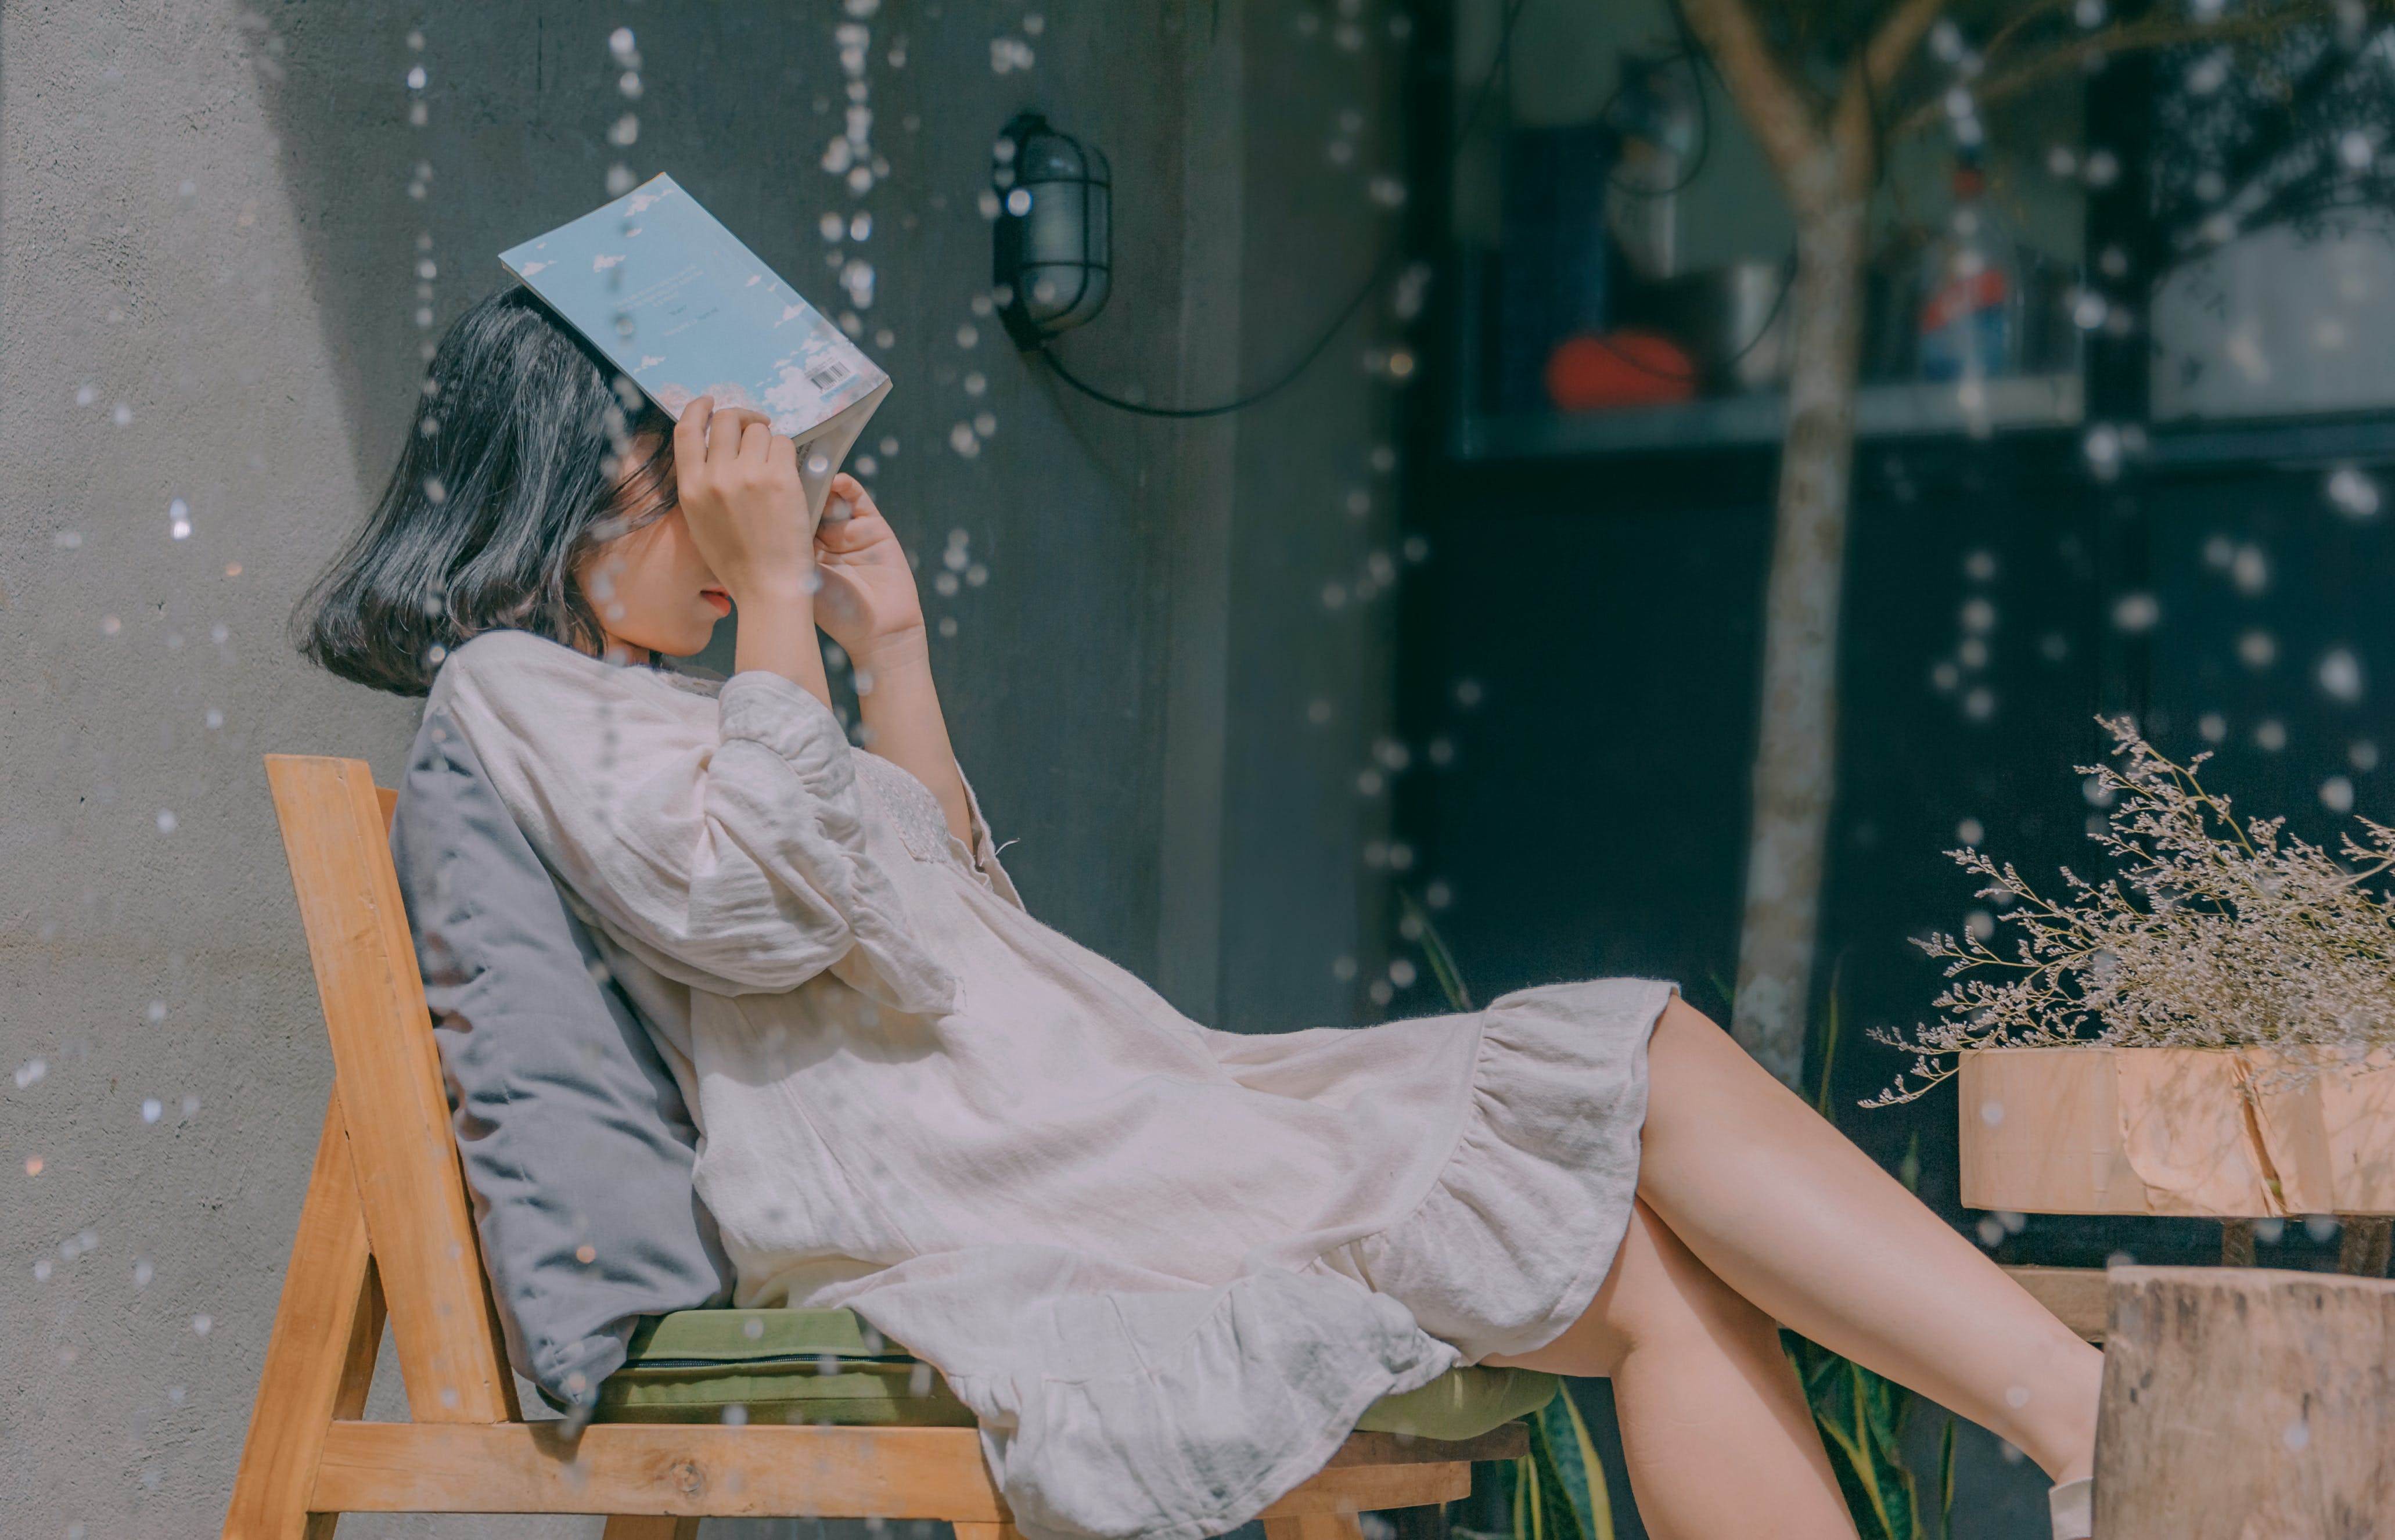 Woman Sitting on Chair While Holding Book